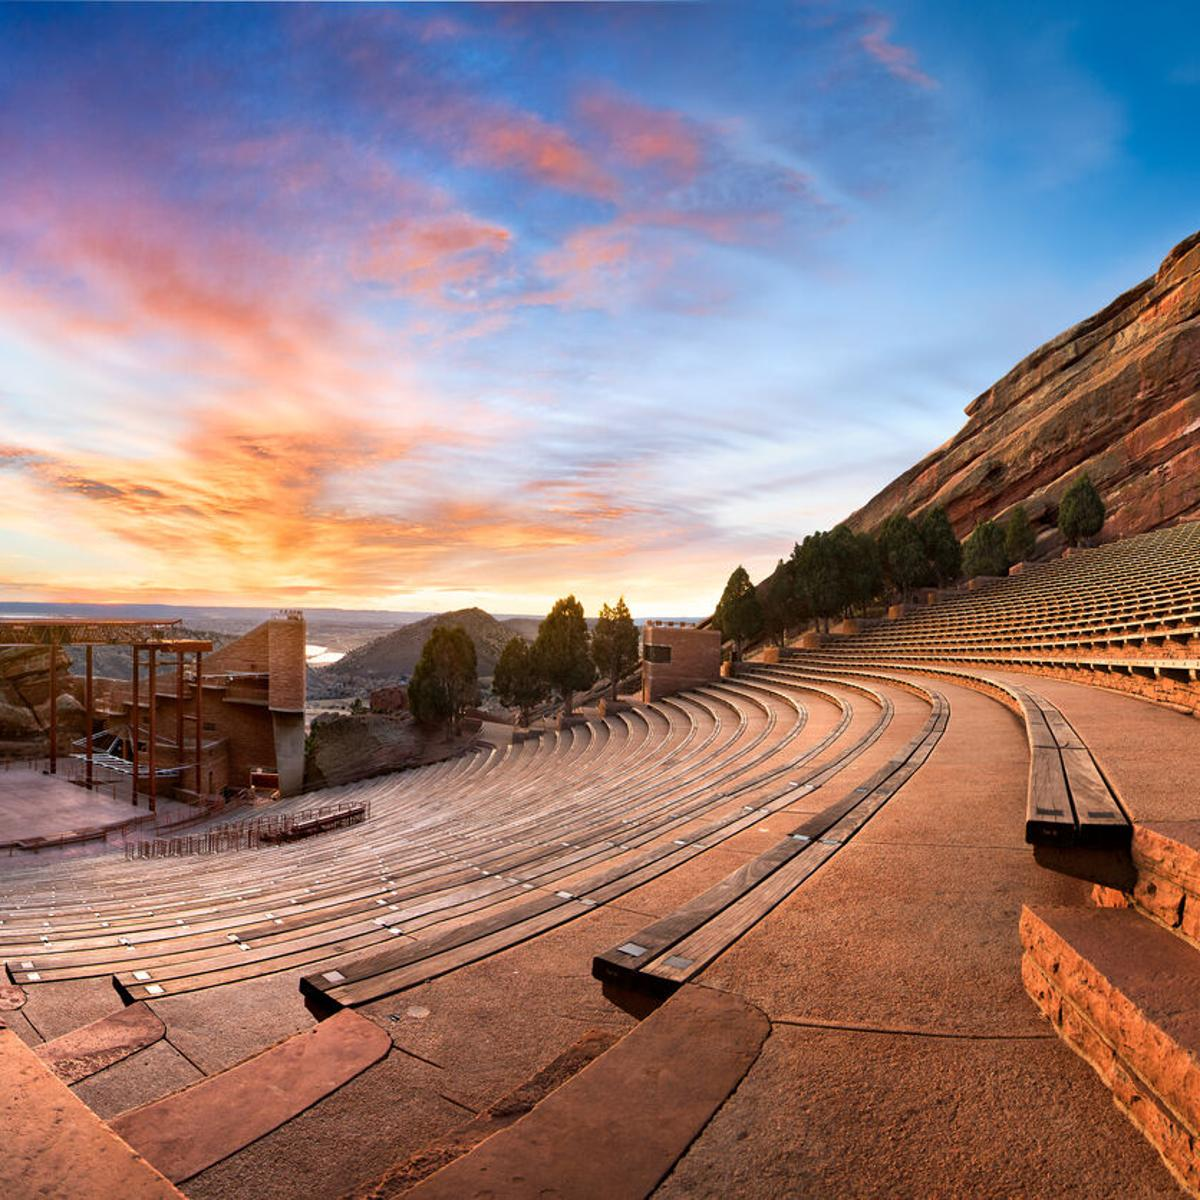 Red Rocks Calendar 2022.Red Rocks Releases List Of Events Canceled Or Postponed Due To Ongoing Covid 19 Pandemic Outthere Colorado